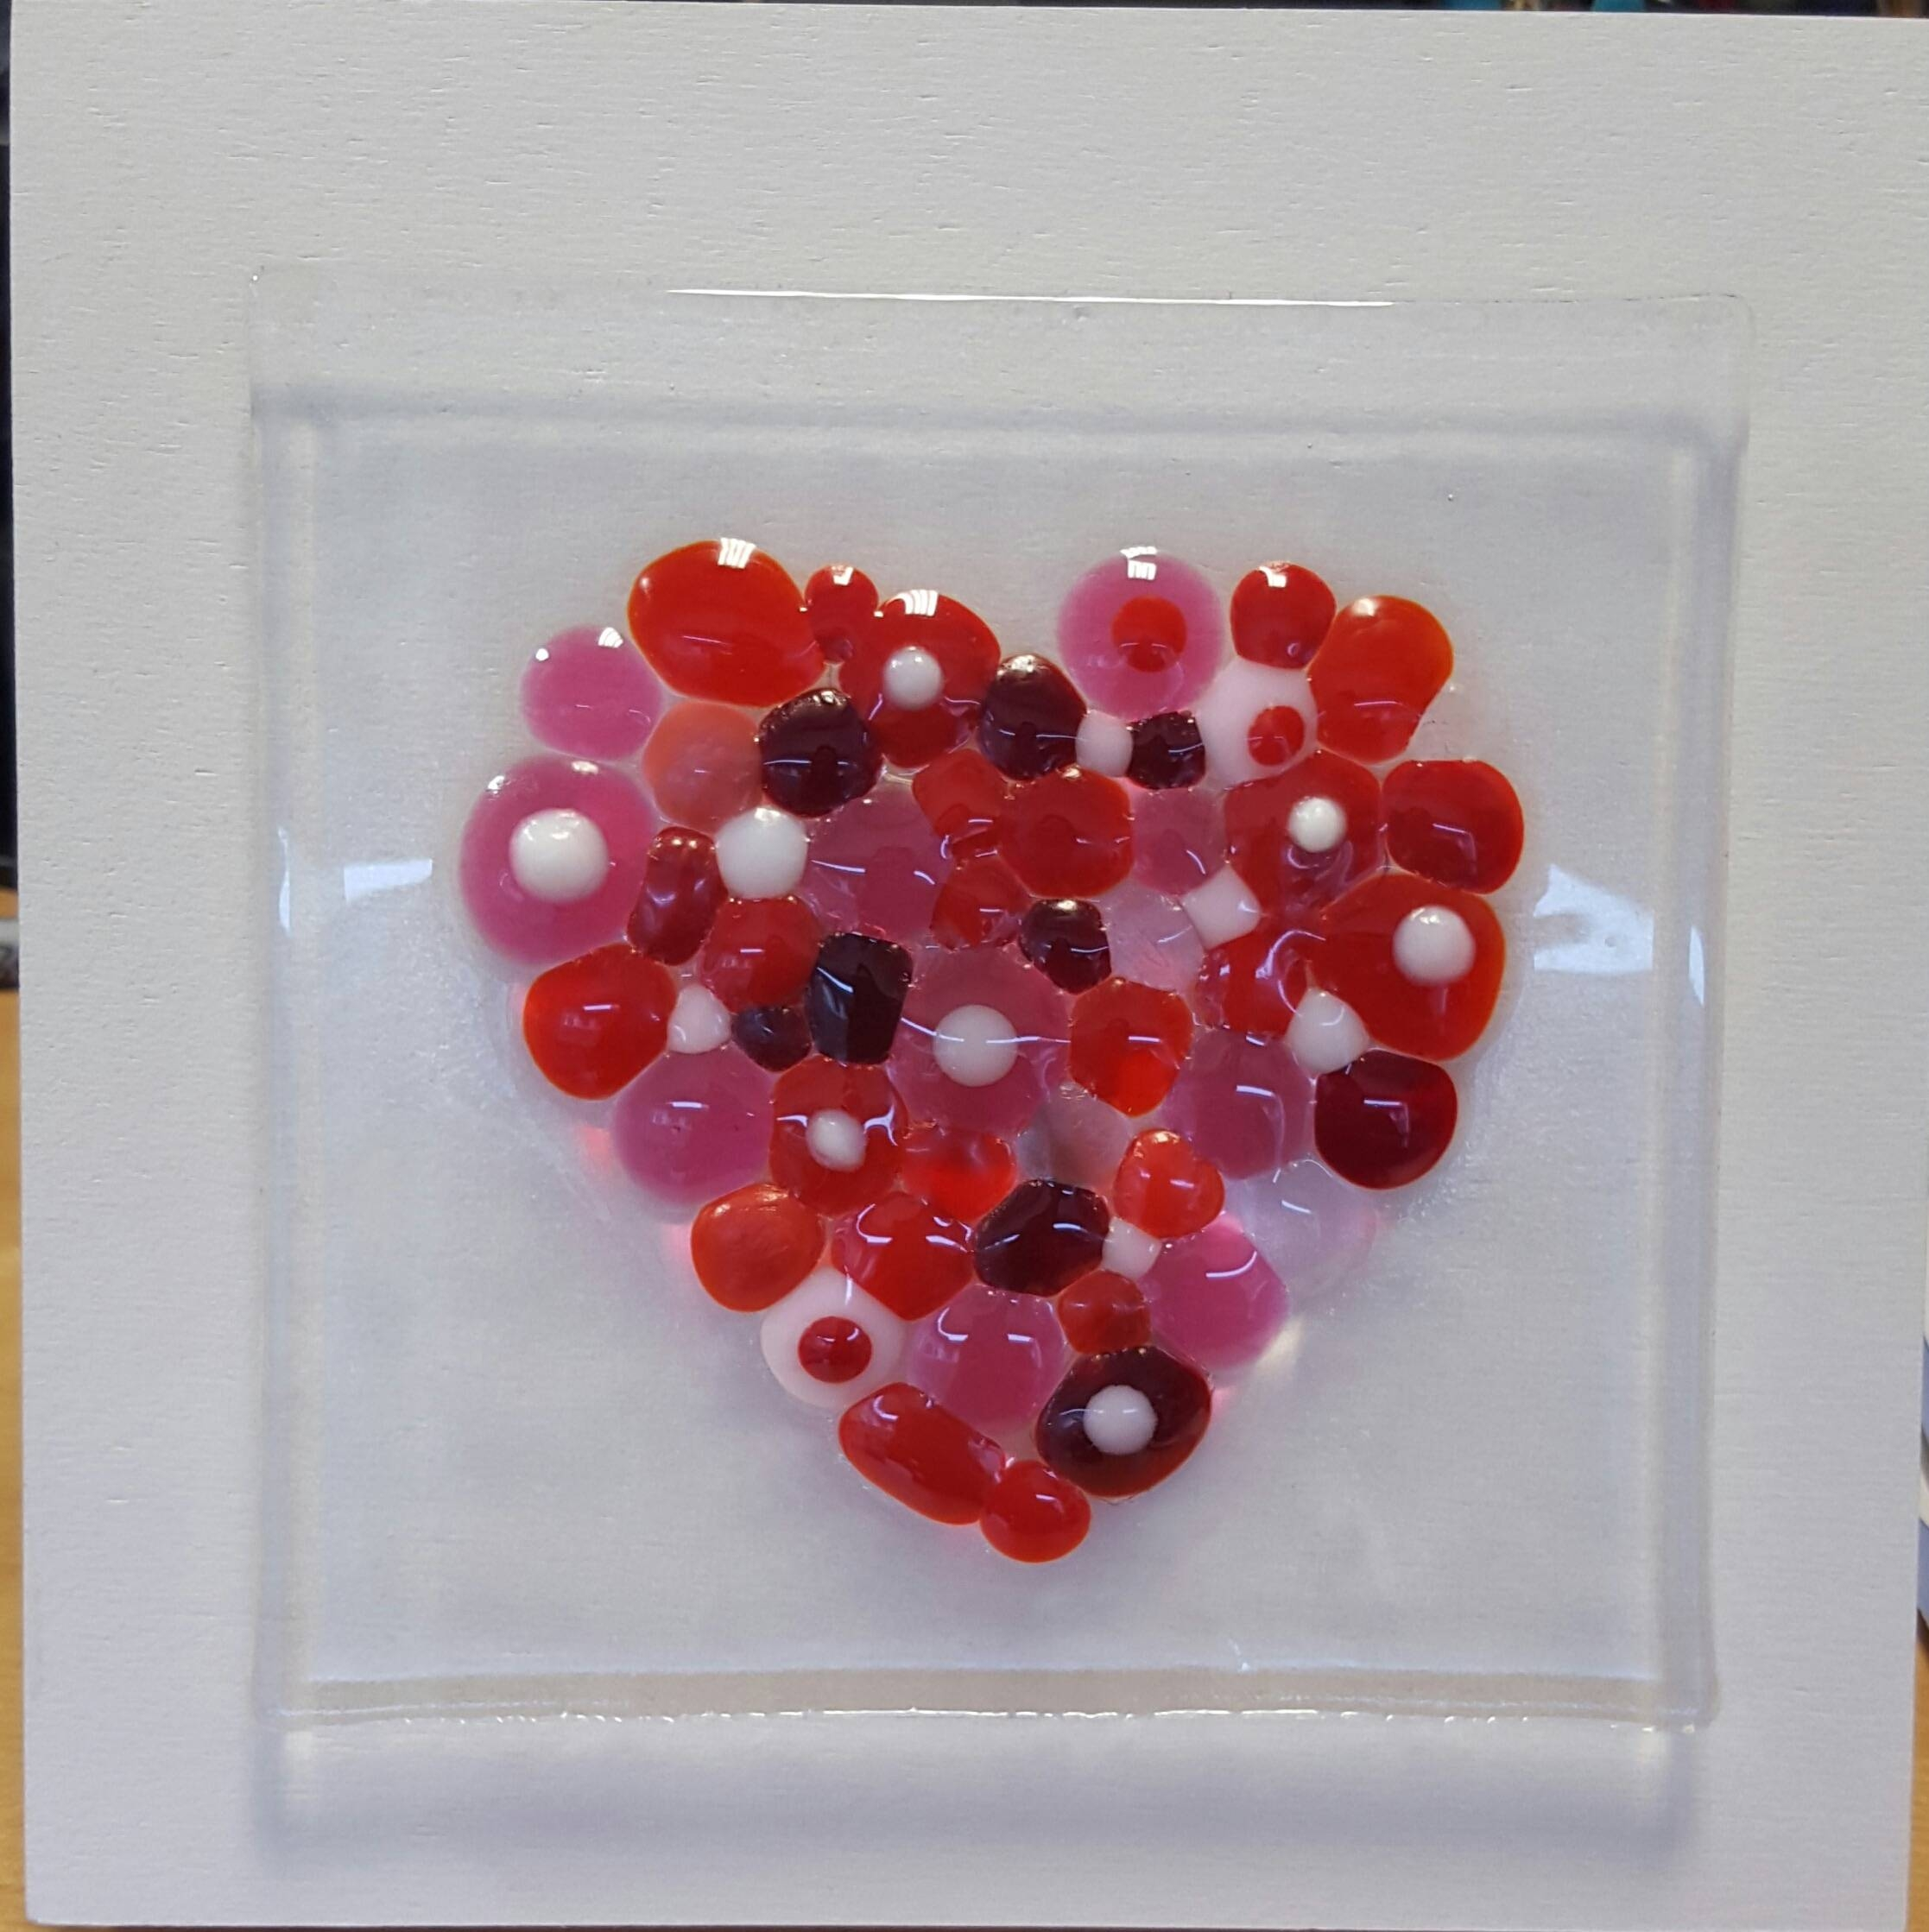 Be My Valentine Fused Glass Wall Hanging | Visarts Throughout Best And Newest Fused Glass Wall Art Hanging (View 15 of 25)